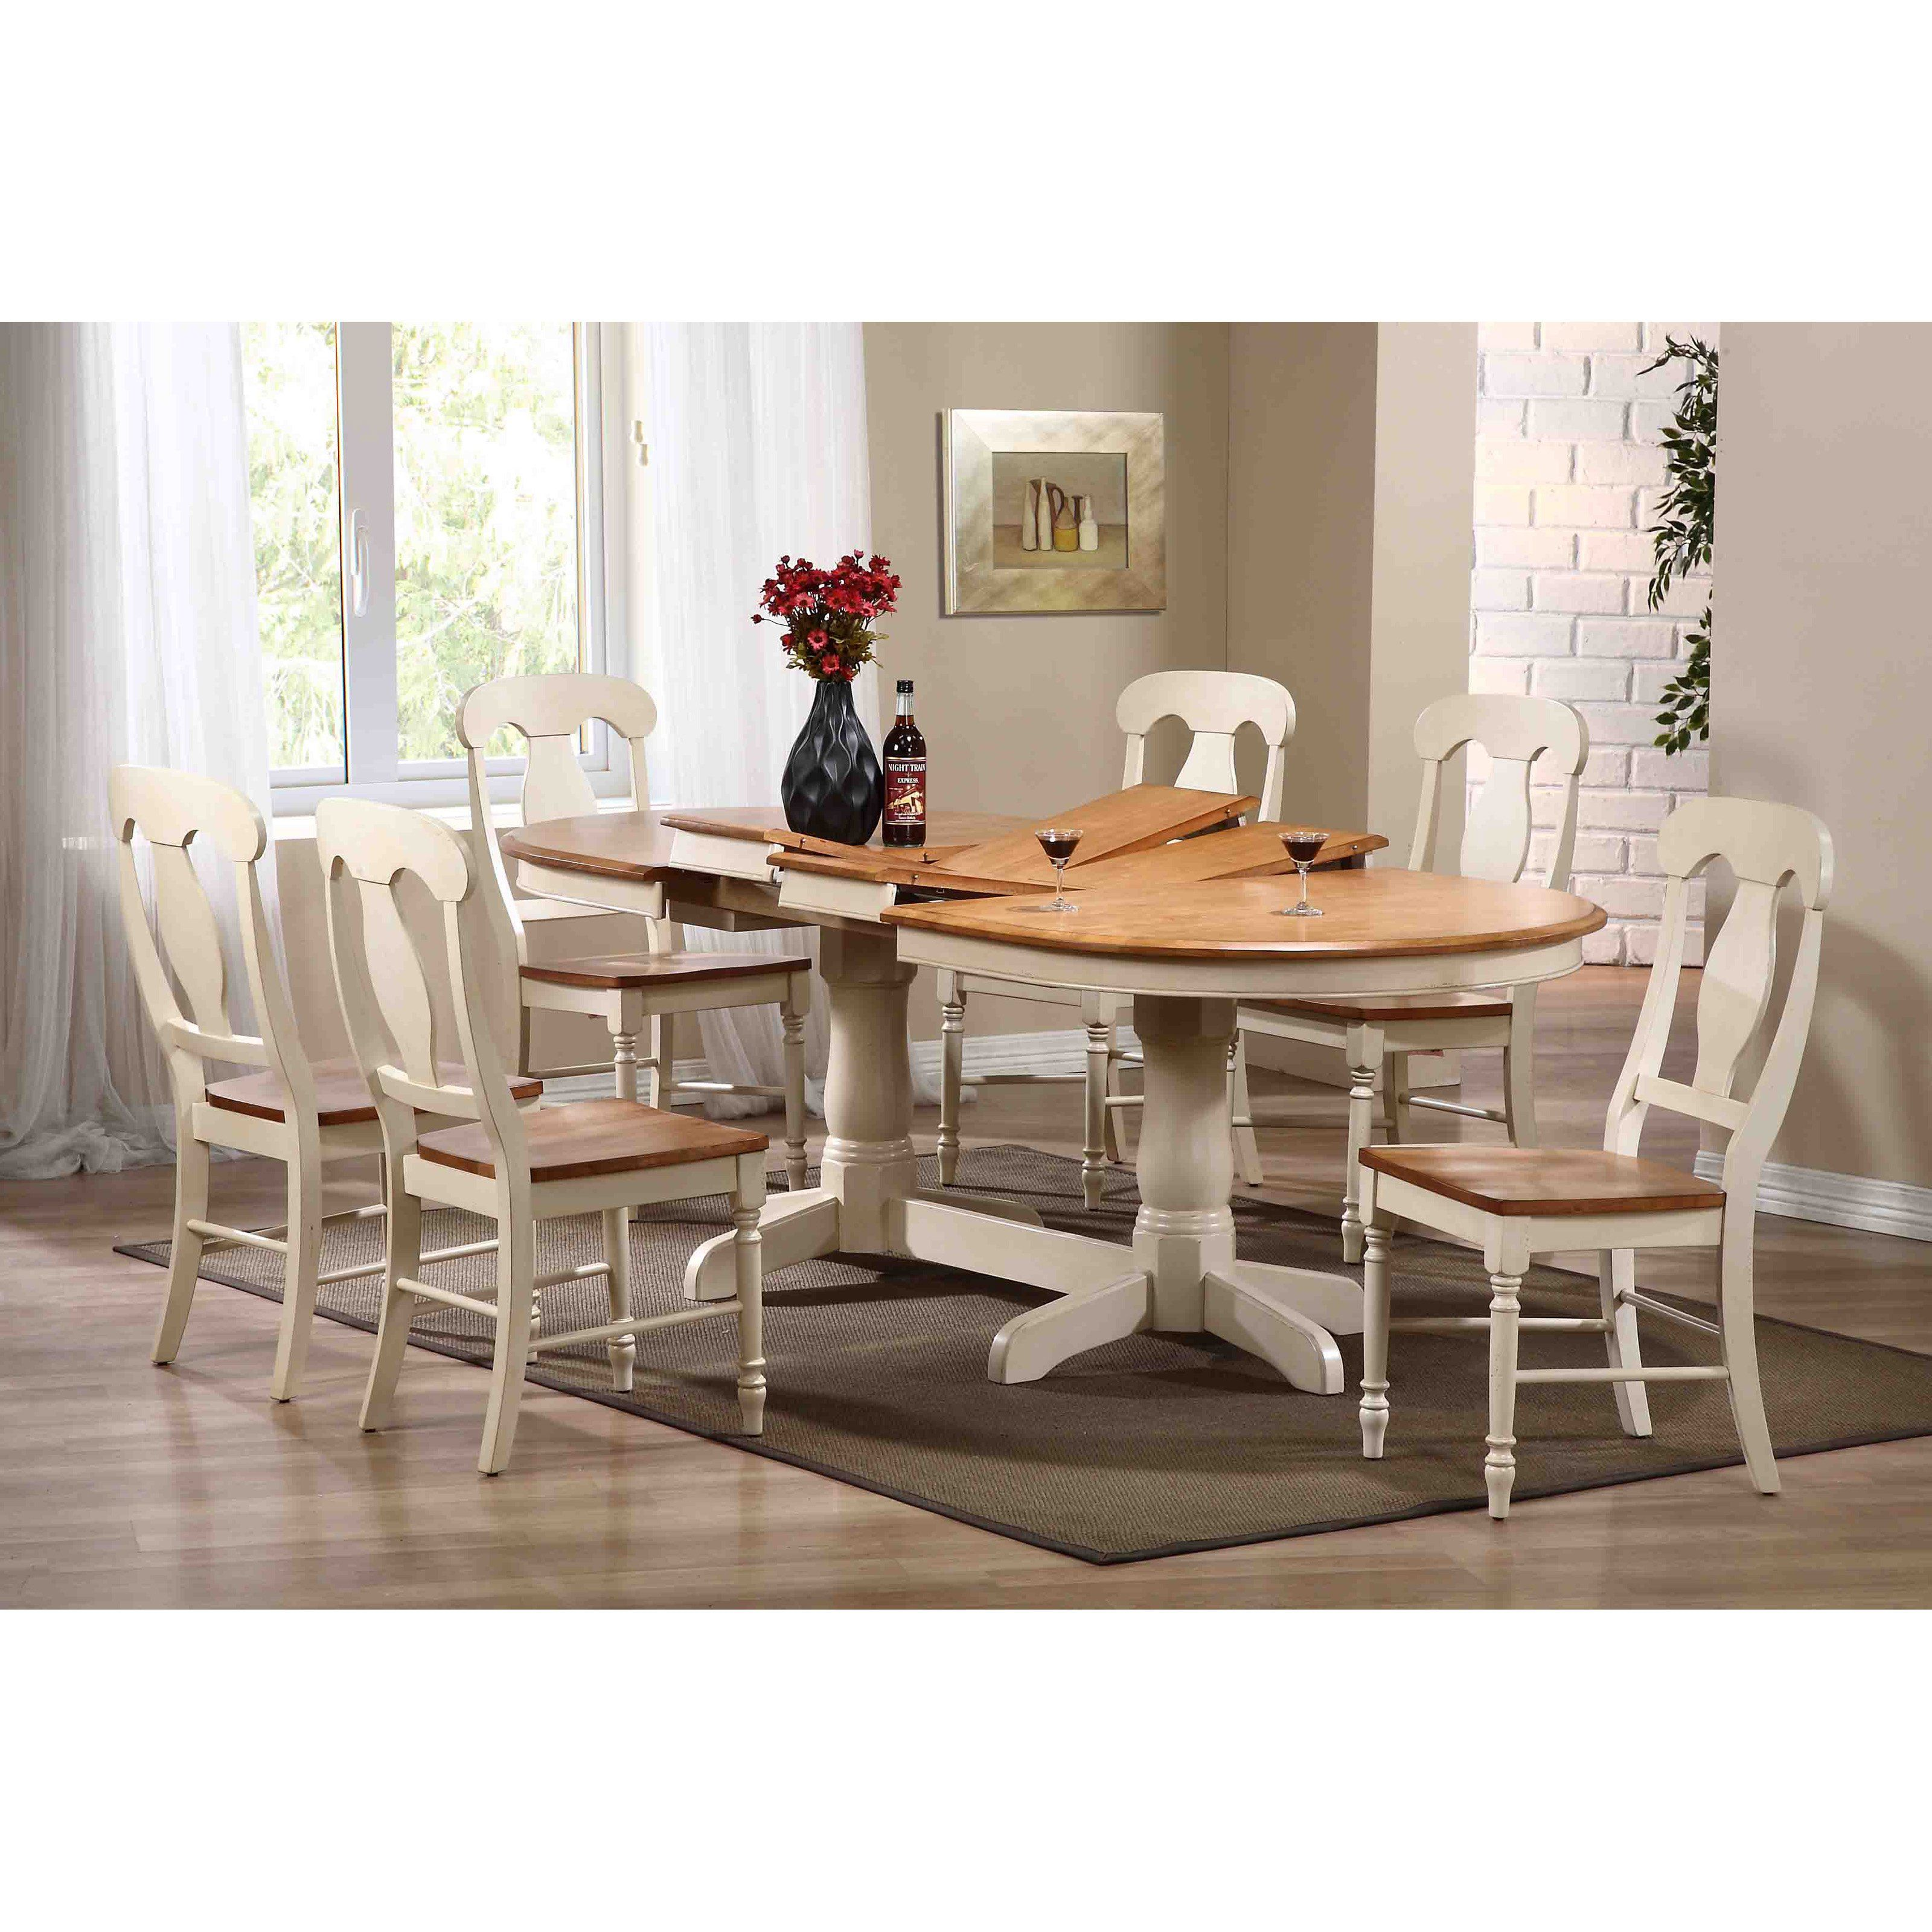 Iconic Furniture 7 Piece Oval Dining Table Set  Caramel Interesting Oval Dining Room Table Set Design Decoration